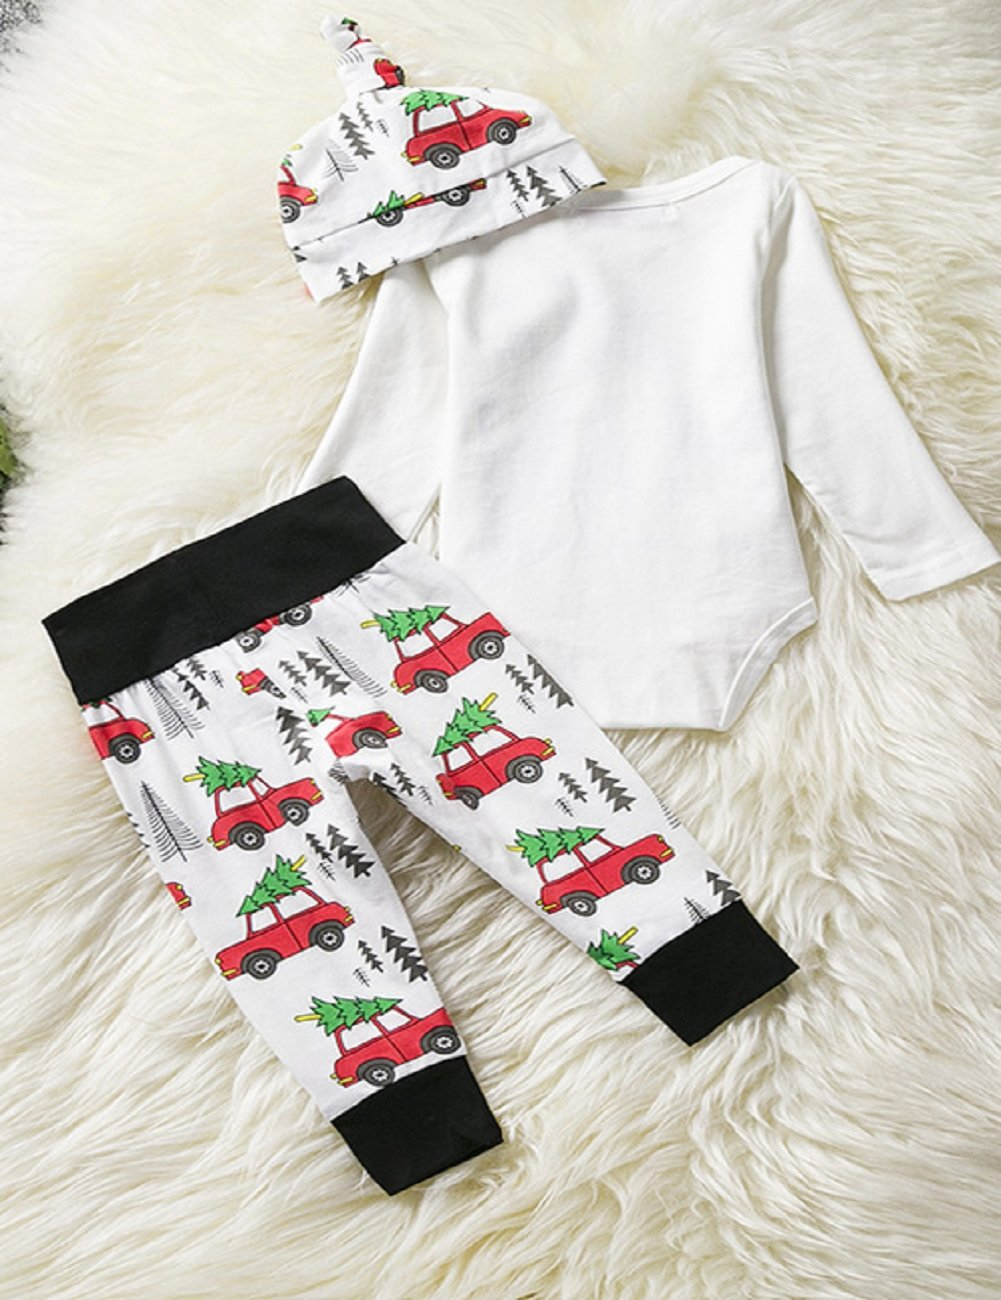 Amazon.com: Kids Christmas Set, SRYSHKR Baby Xmas Tops + Pants Home Outfits Pajamas hat 3pcs Set (3-6M, Red): Office Products